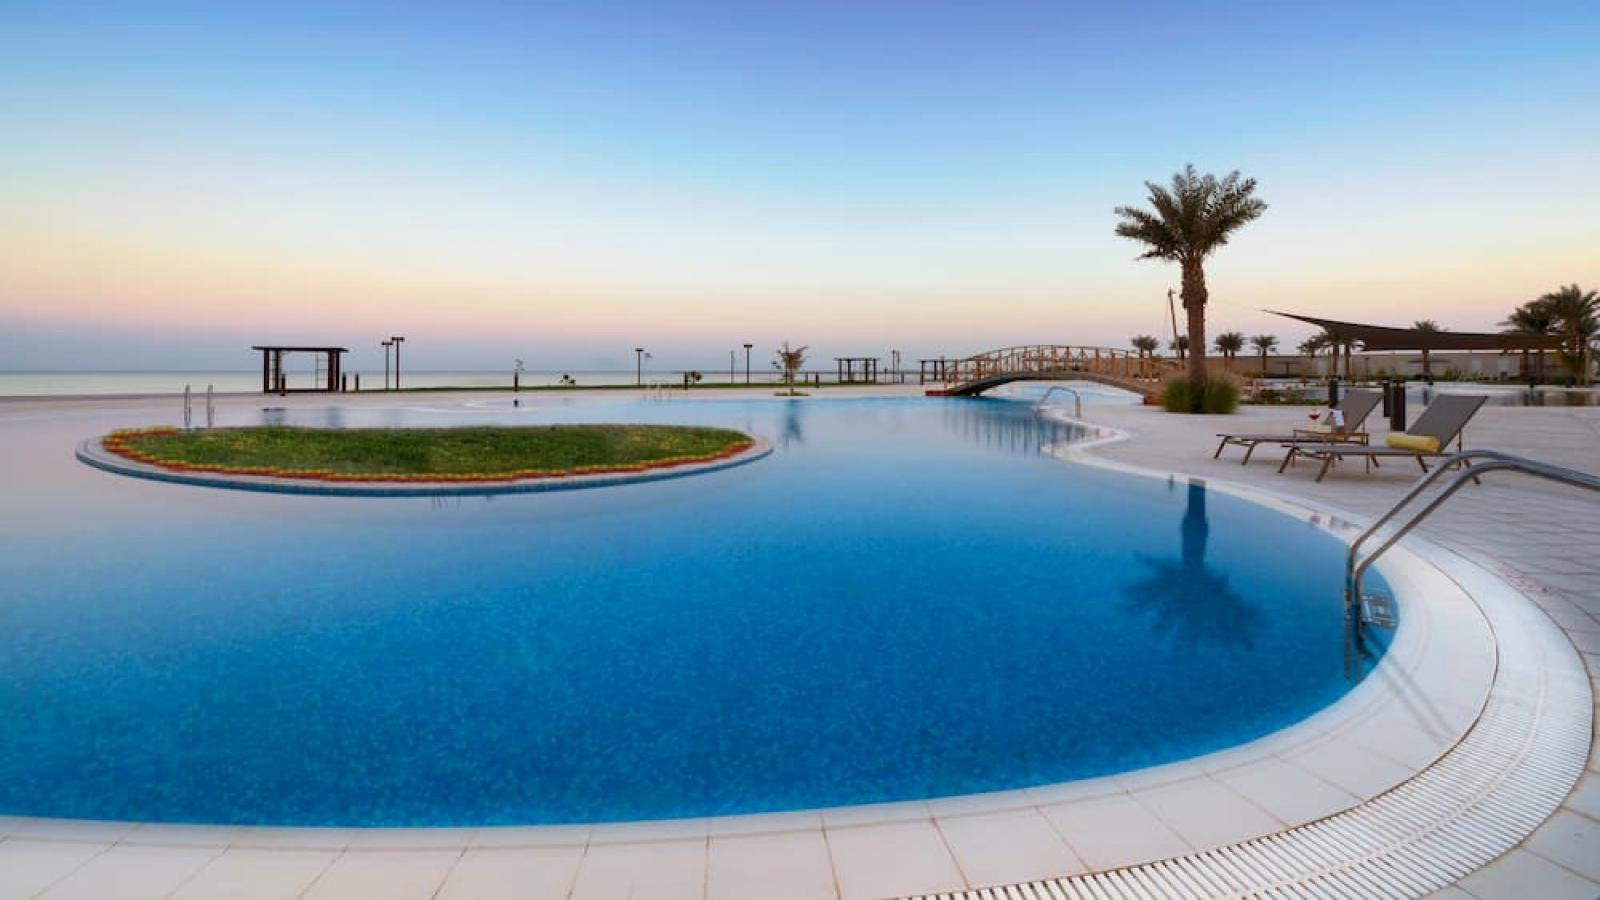 Discover the exotic world of leisure and luxury at Sealine Beach, a Murwab Resort